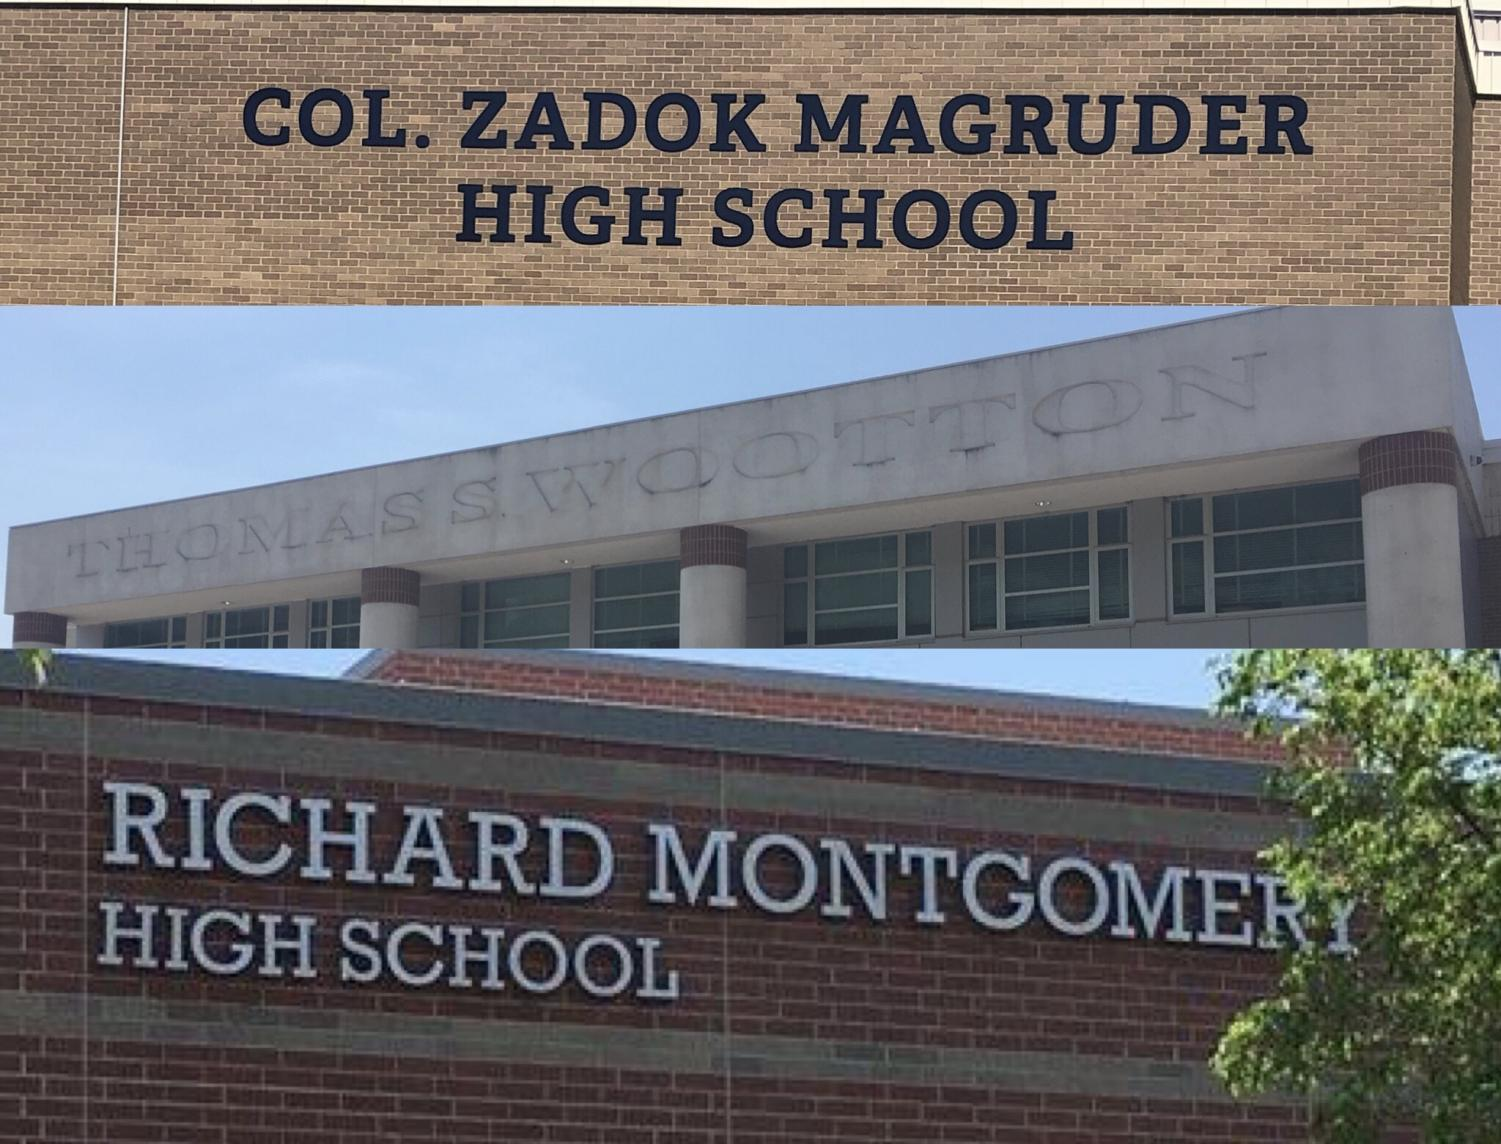 Magruder, Wootton and Richard Montgomery High Schools, all of which are named after slave owners